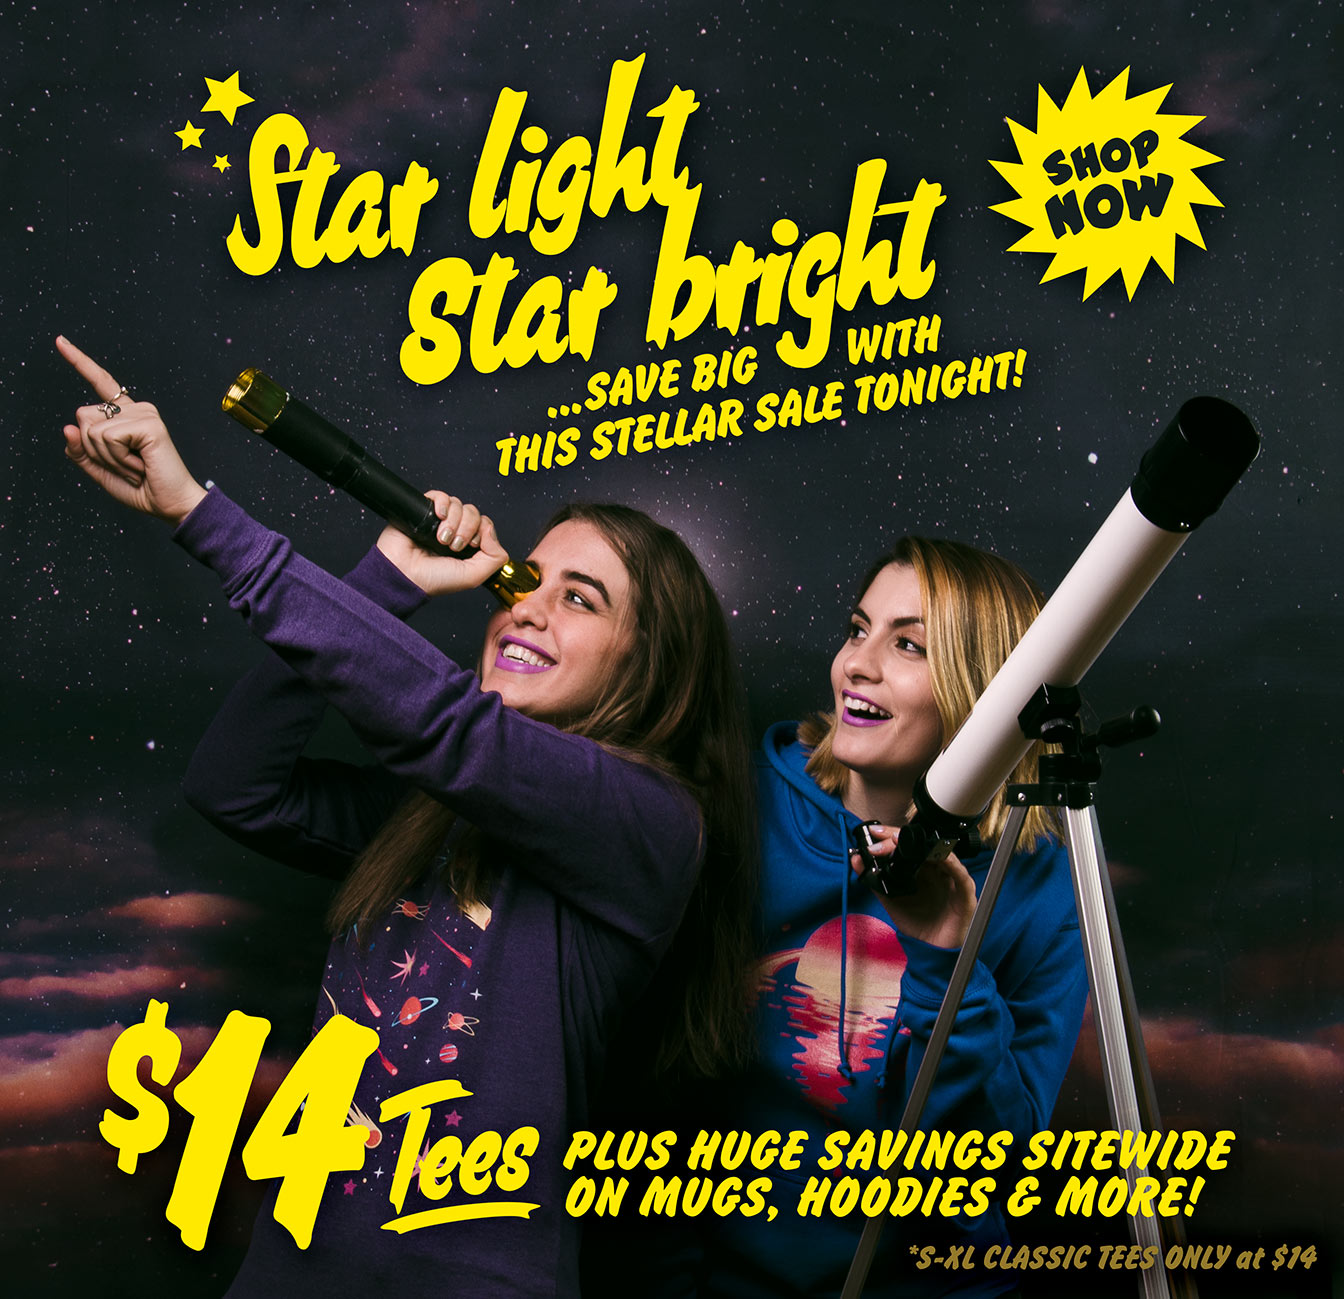 Star light, star bright. Save big with this stellar sale tonight! $14 tees plus huge savings sitewide on mugs, hoodies, and more! Offer valid only on S–XL Classic Tees